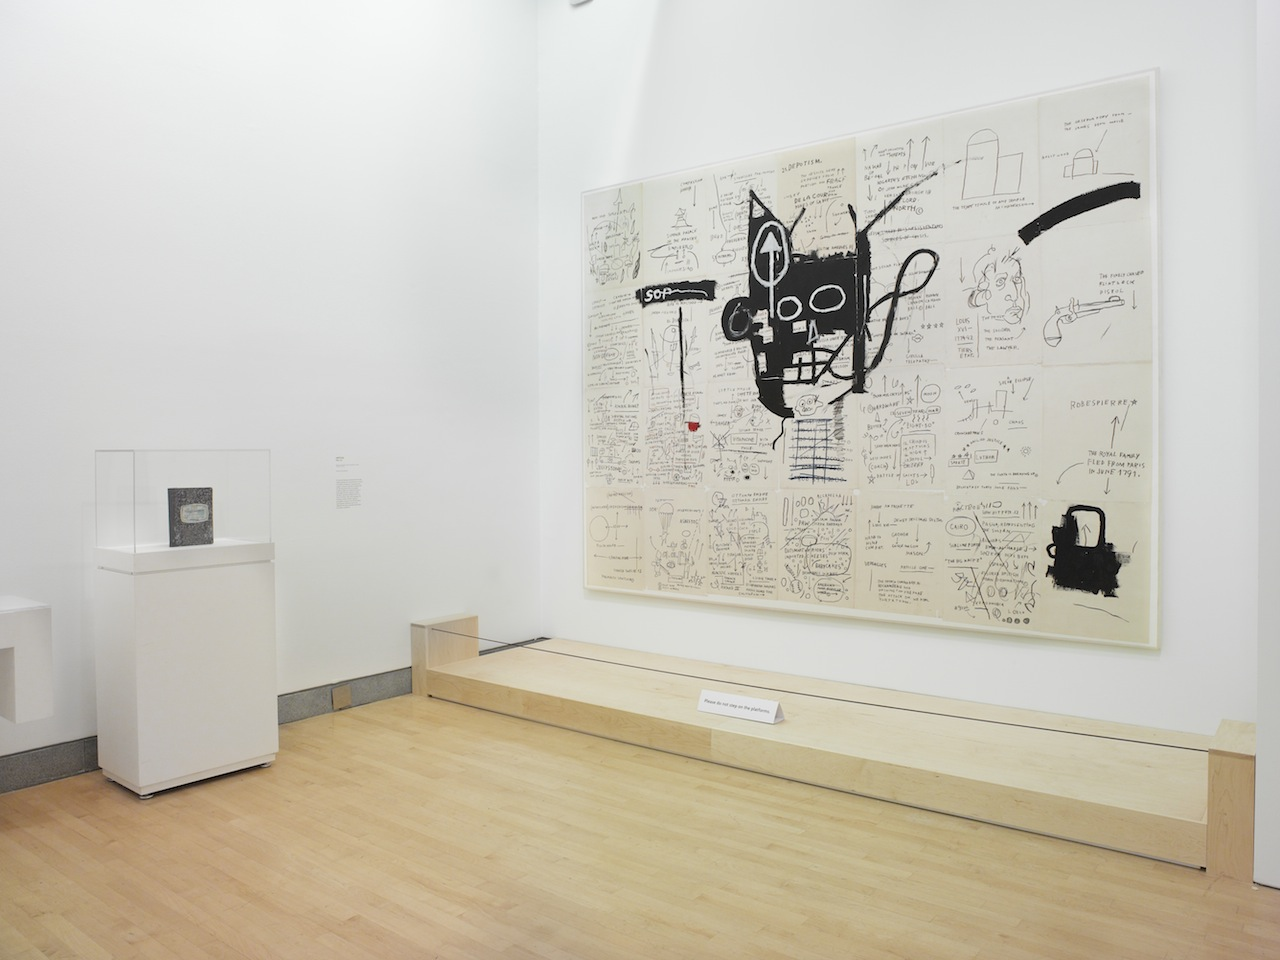 Installation view, 'Basquiat: The Unknown Notebooks' at the Brooklyn Museum (photo by Jonathan Dorado, courtesy the Brooklyn Museum